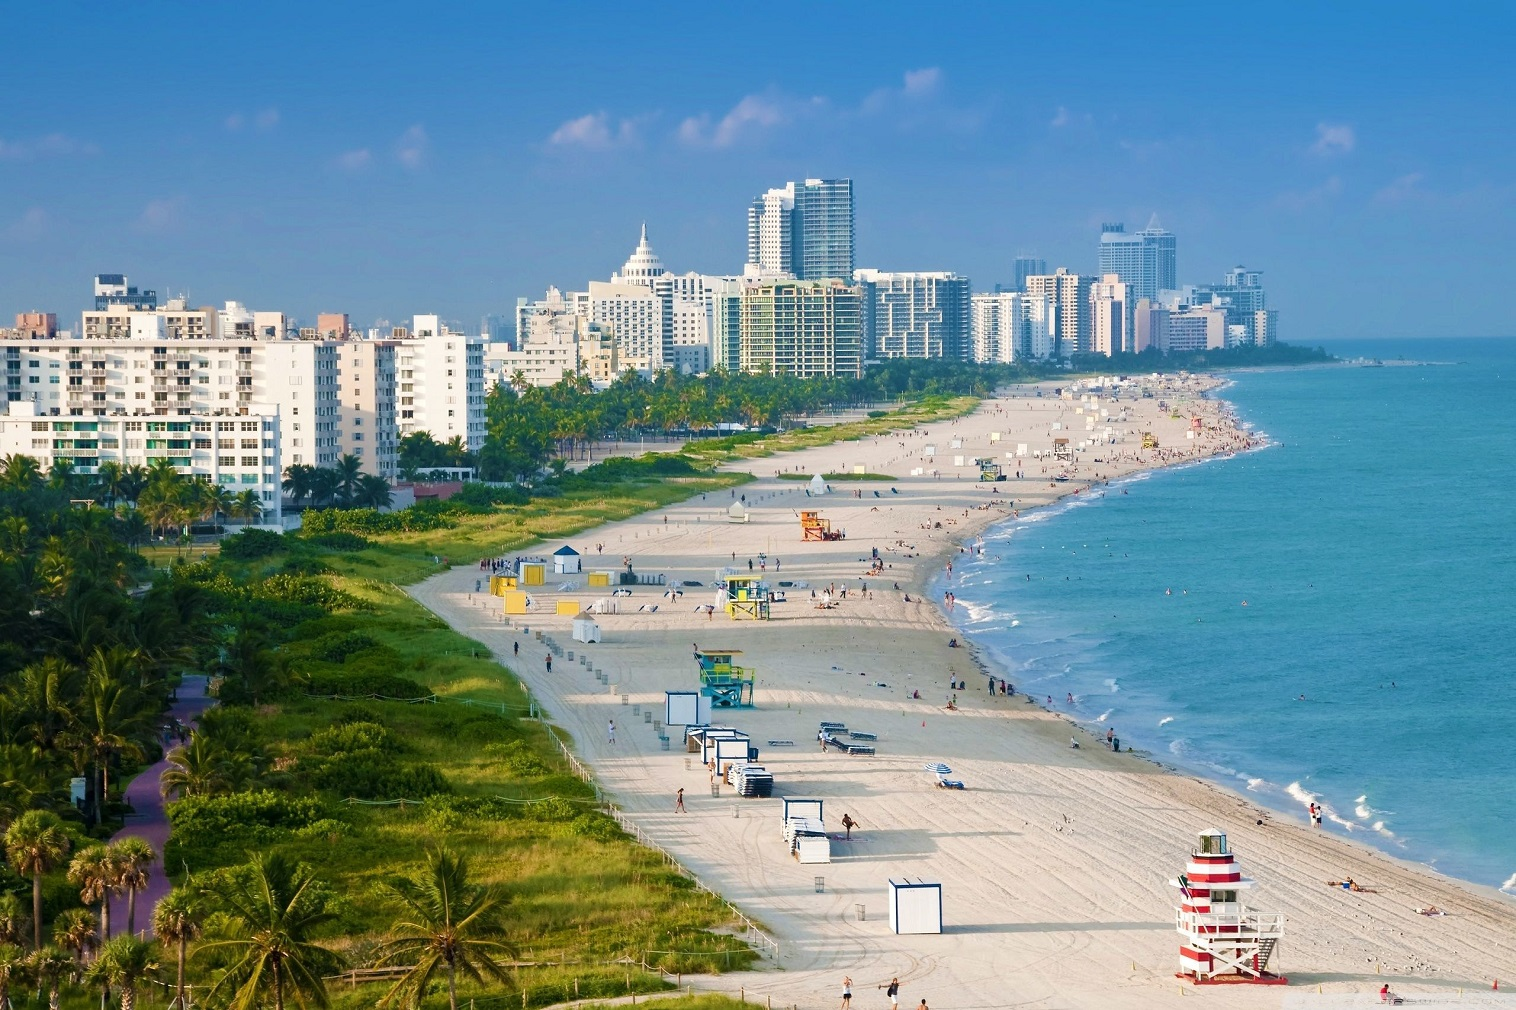 Miami Beach, a city that is like no other place in the world